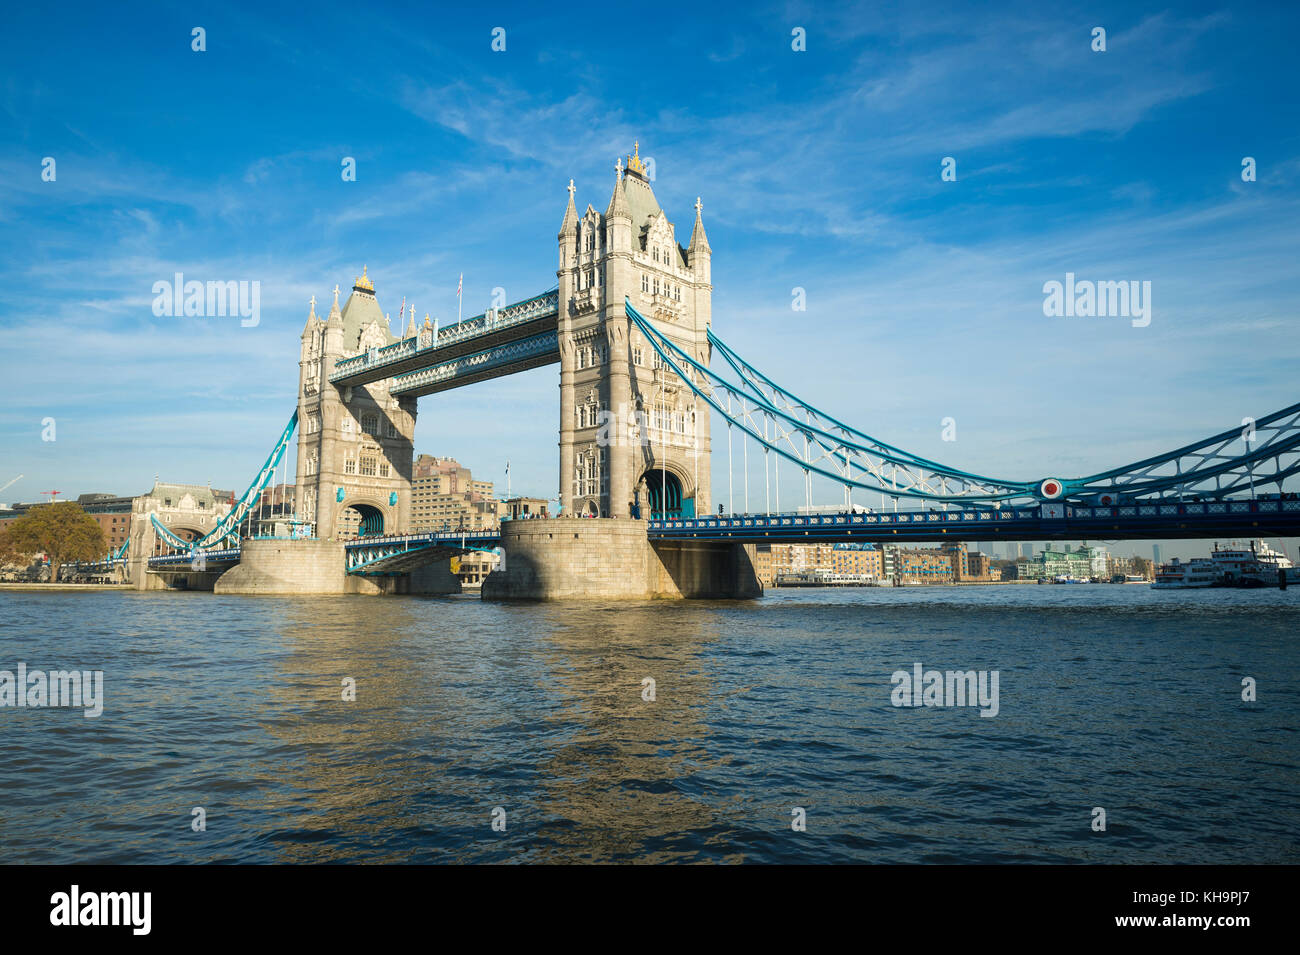 Scenic landscape view of Tower Bridge standing tall in afternoon light above the River Thames as viewd from the - Stock Image